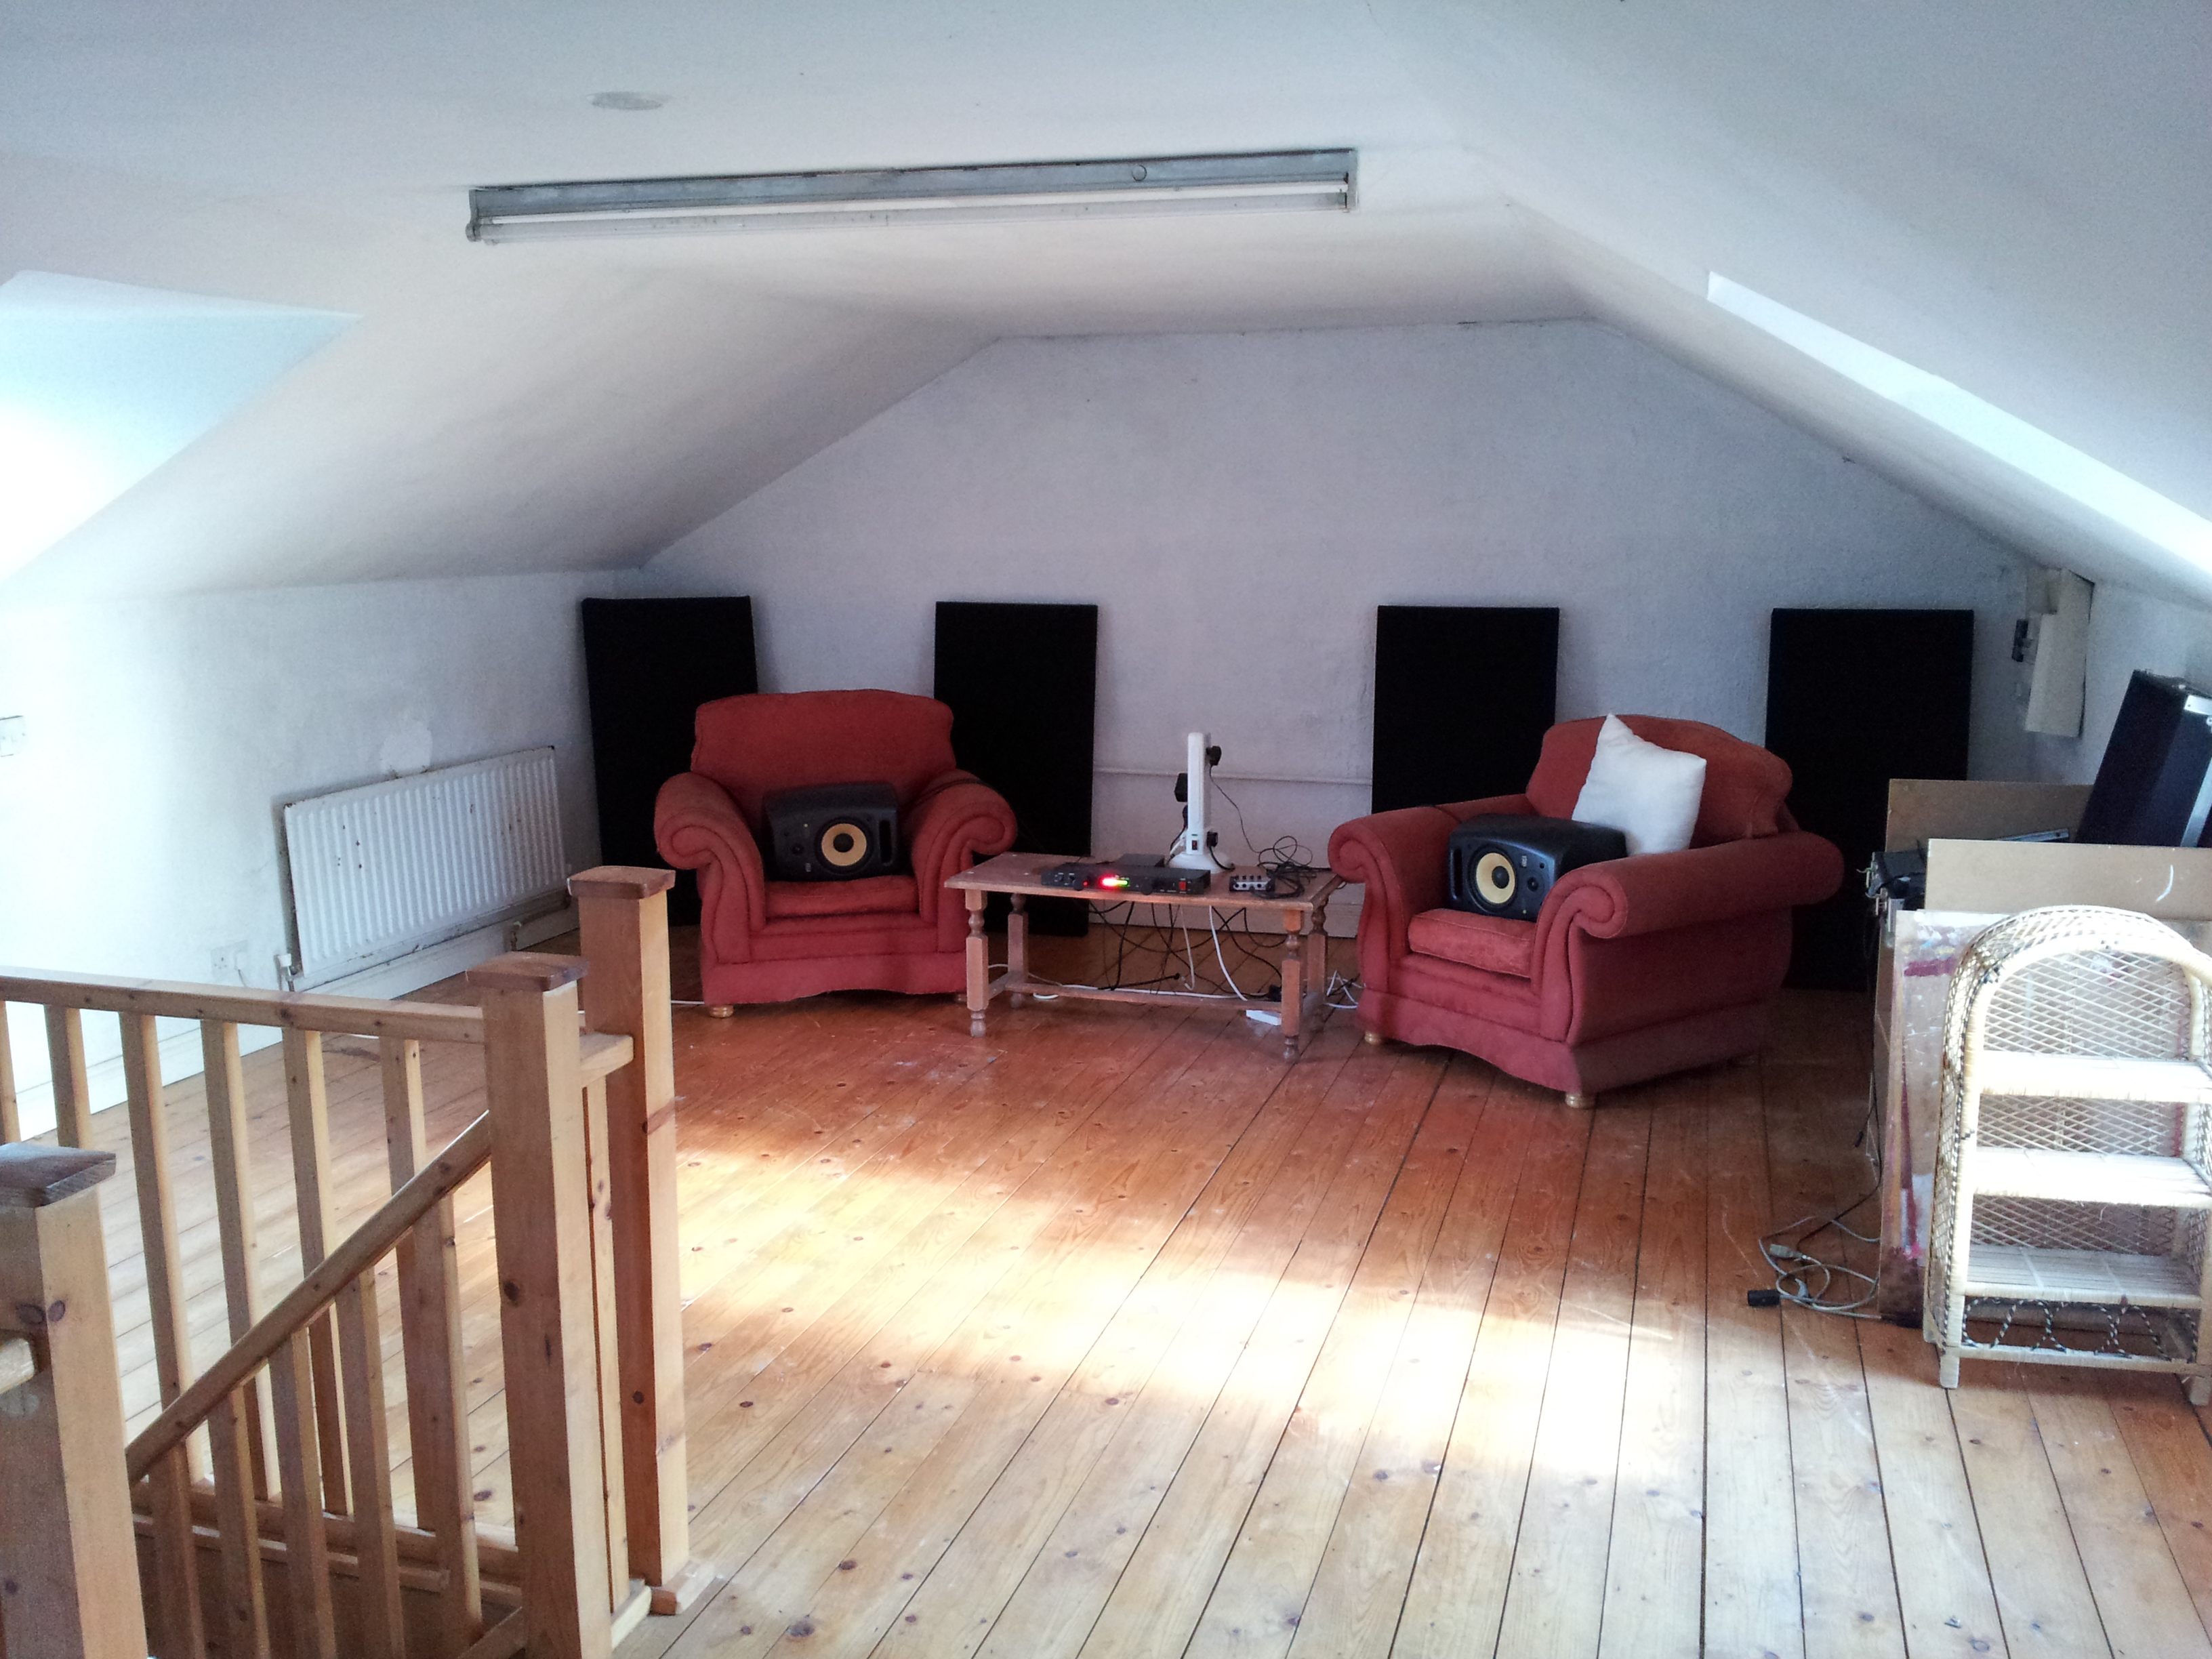 new home for our home studio large attic space gearslutz pro new home for our home studio large attic space 2011 08 20